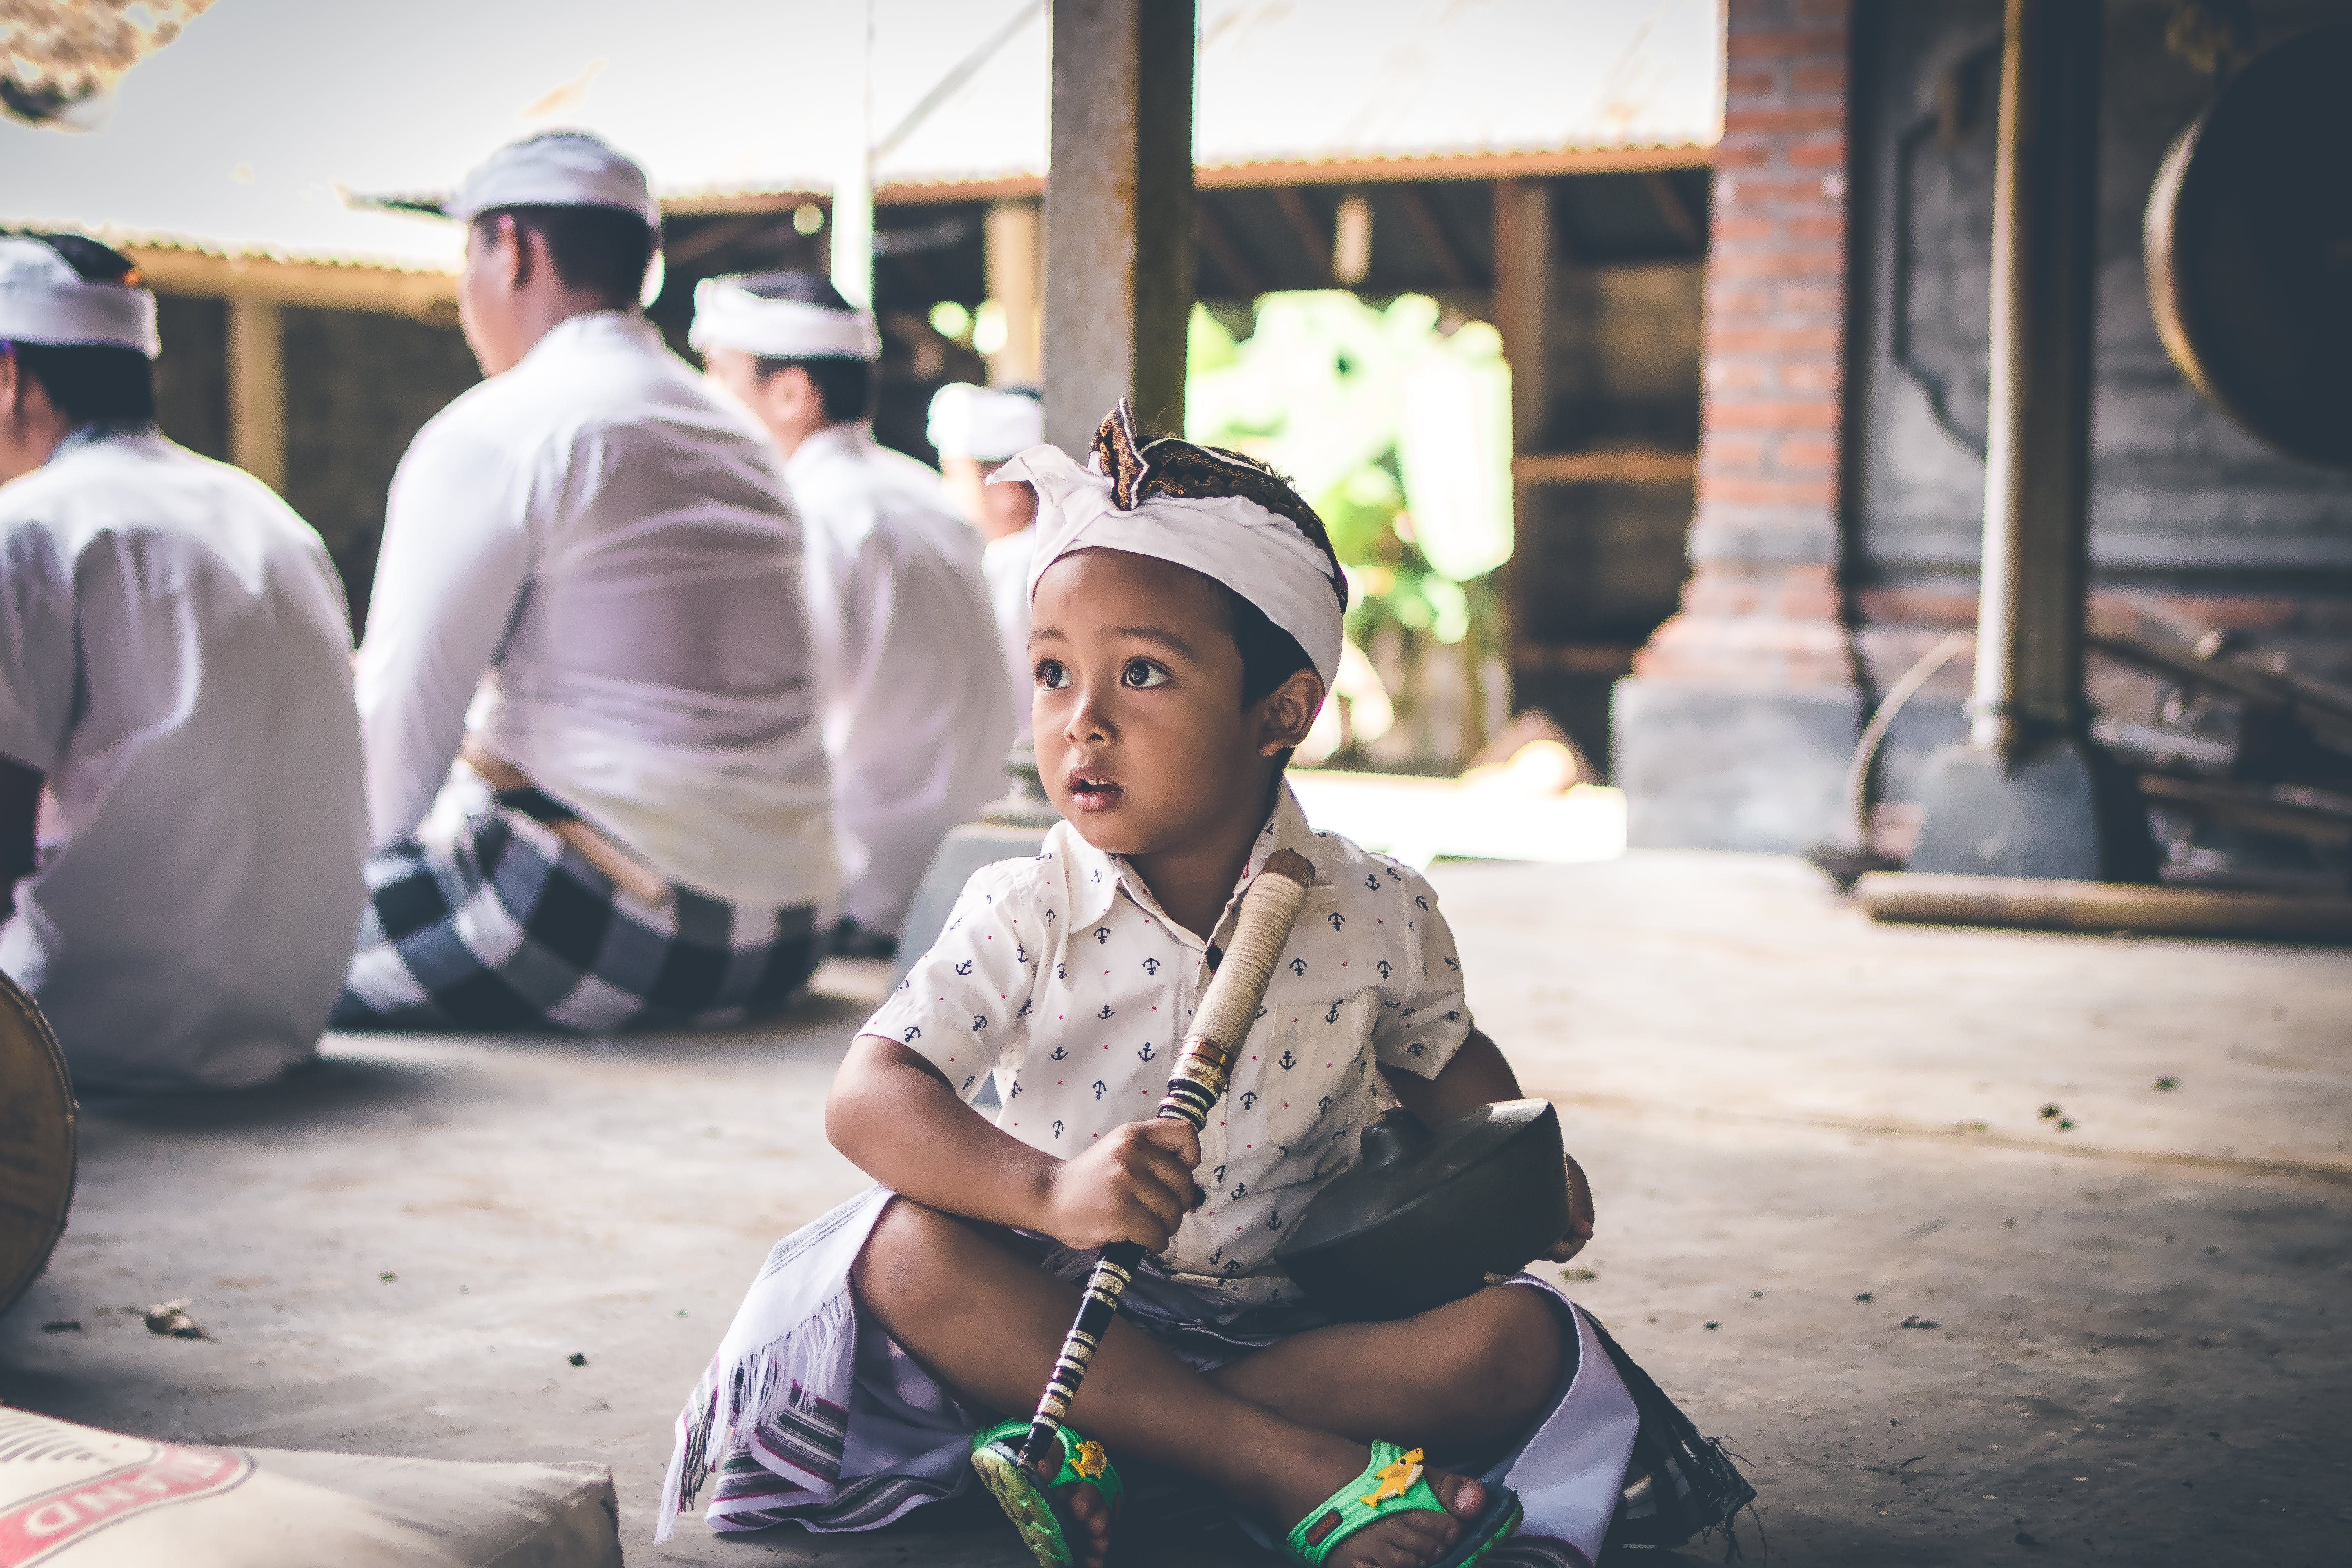 Boy Holding Flute While Sitting on Floor